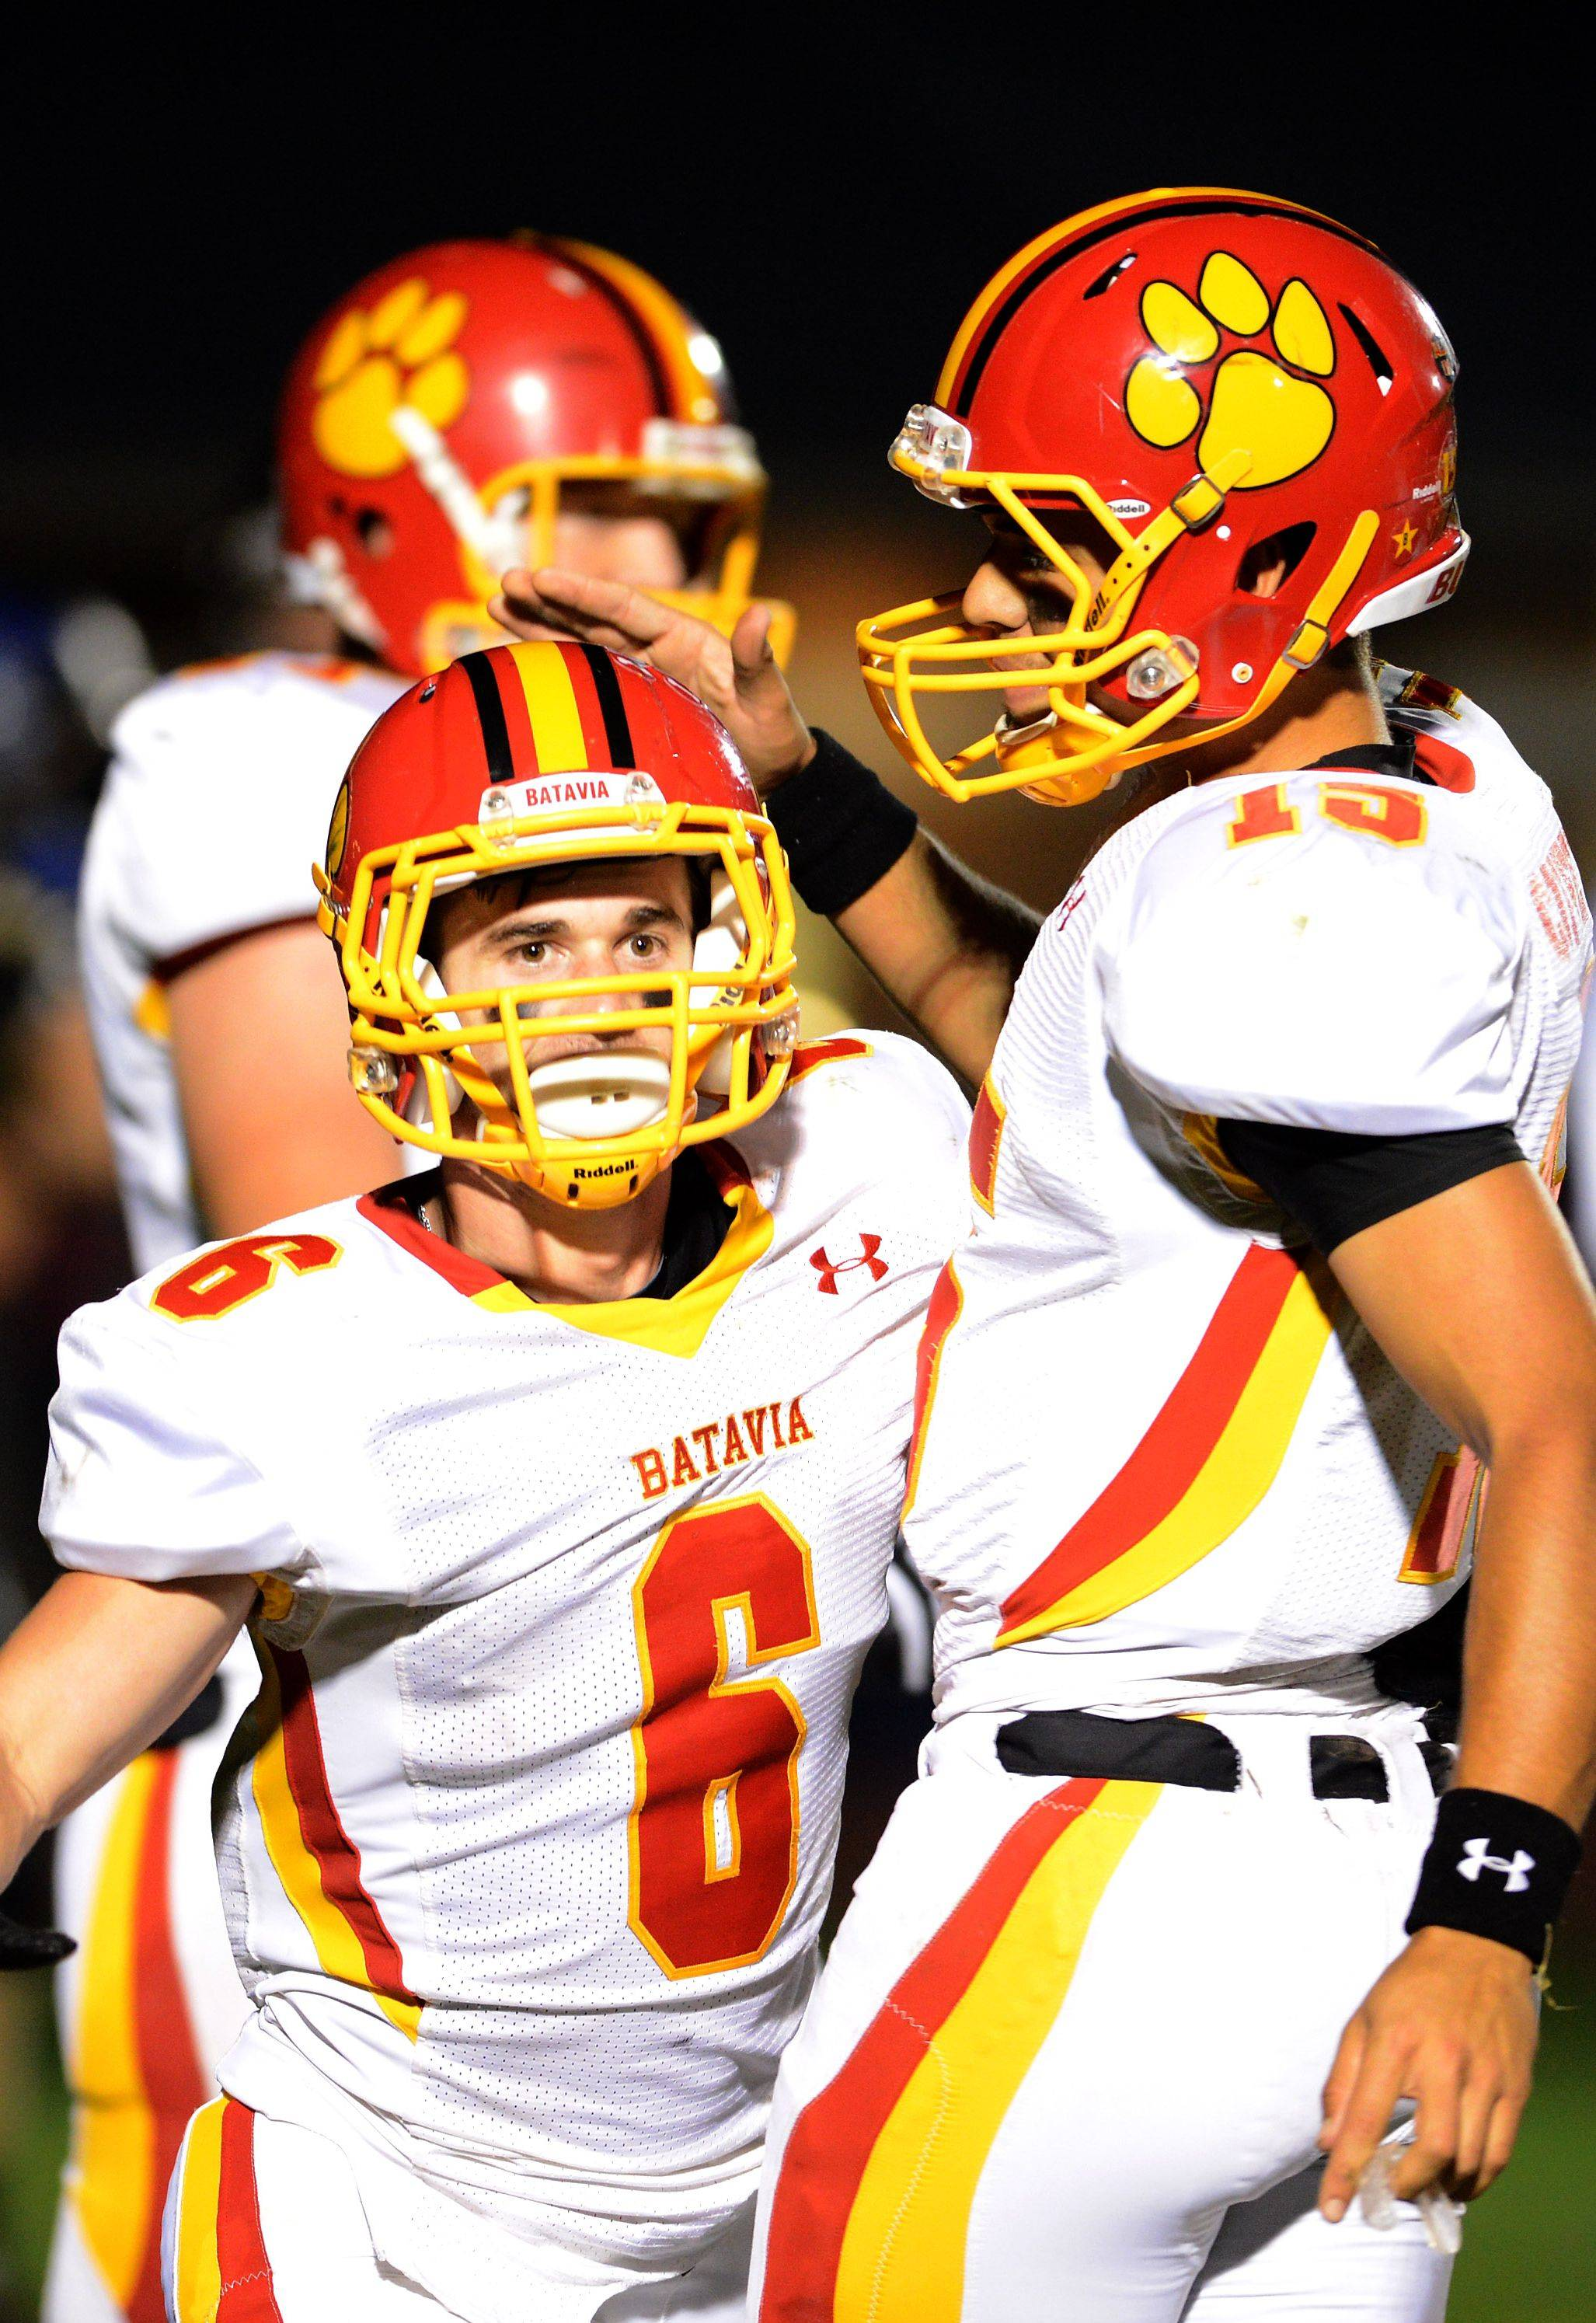 Rourke Mullins and Micah Coffey connected for a touchdown in Batavia�s win last week over Elgin and will look to put many more points on the board in its playoff opener Friday against DeKalb.